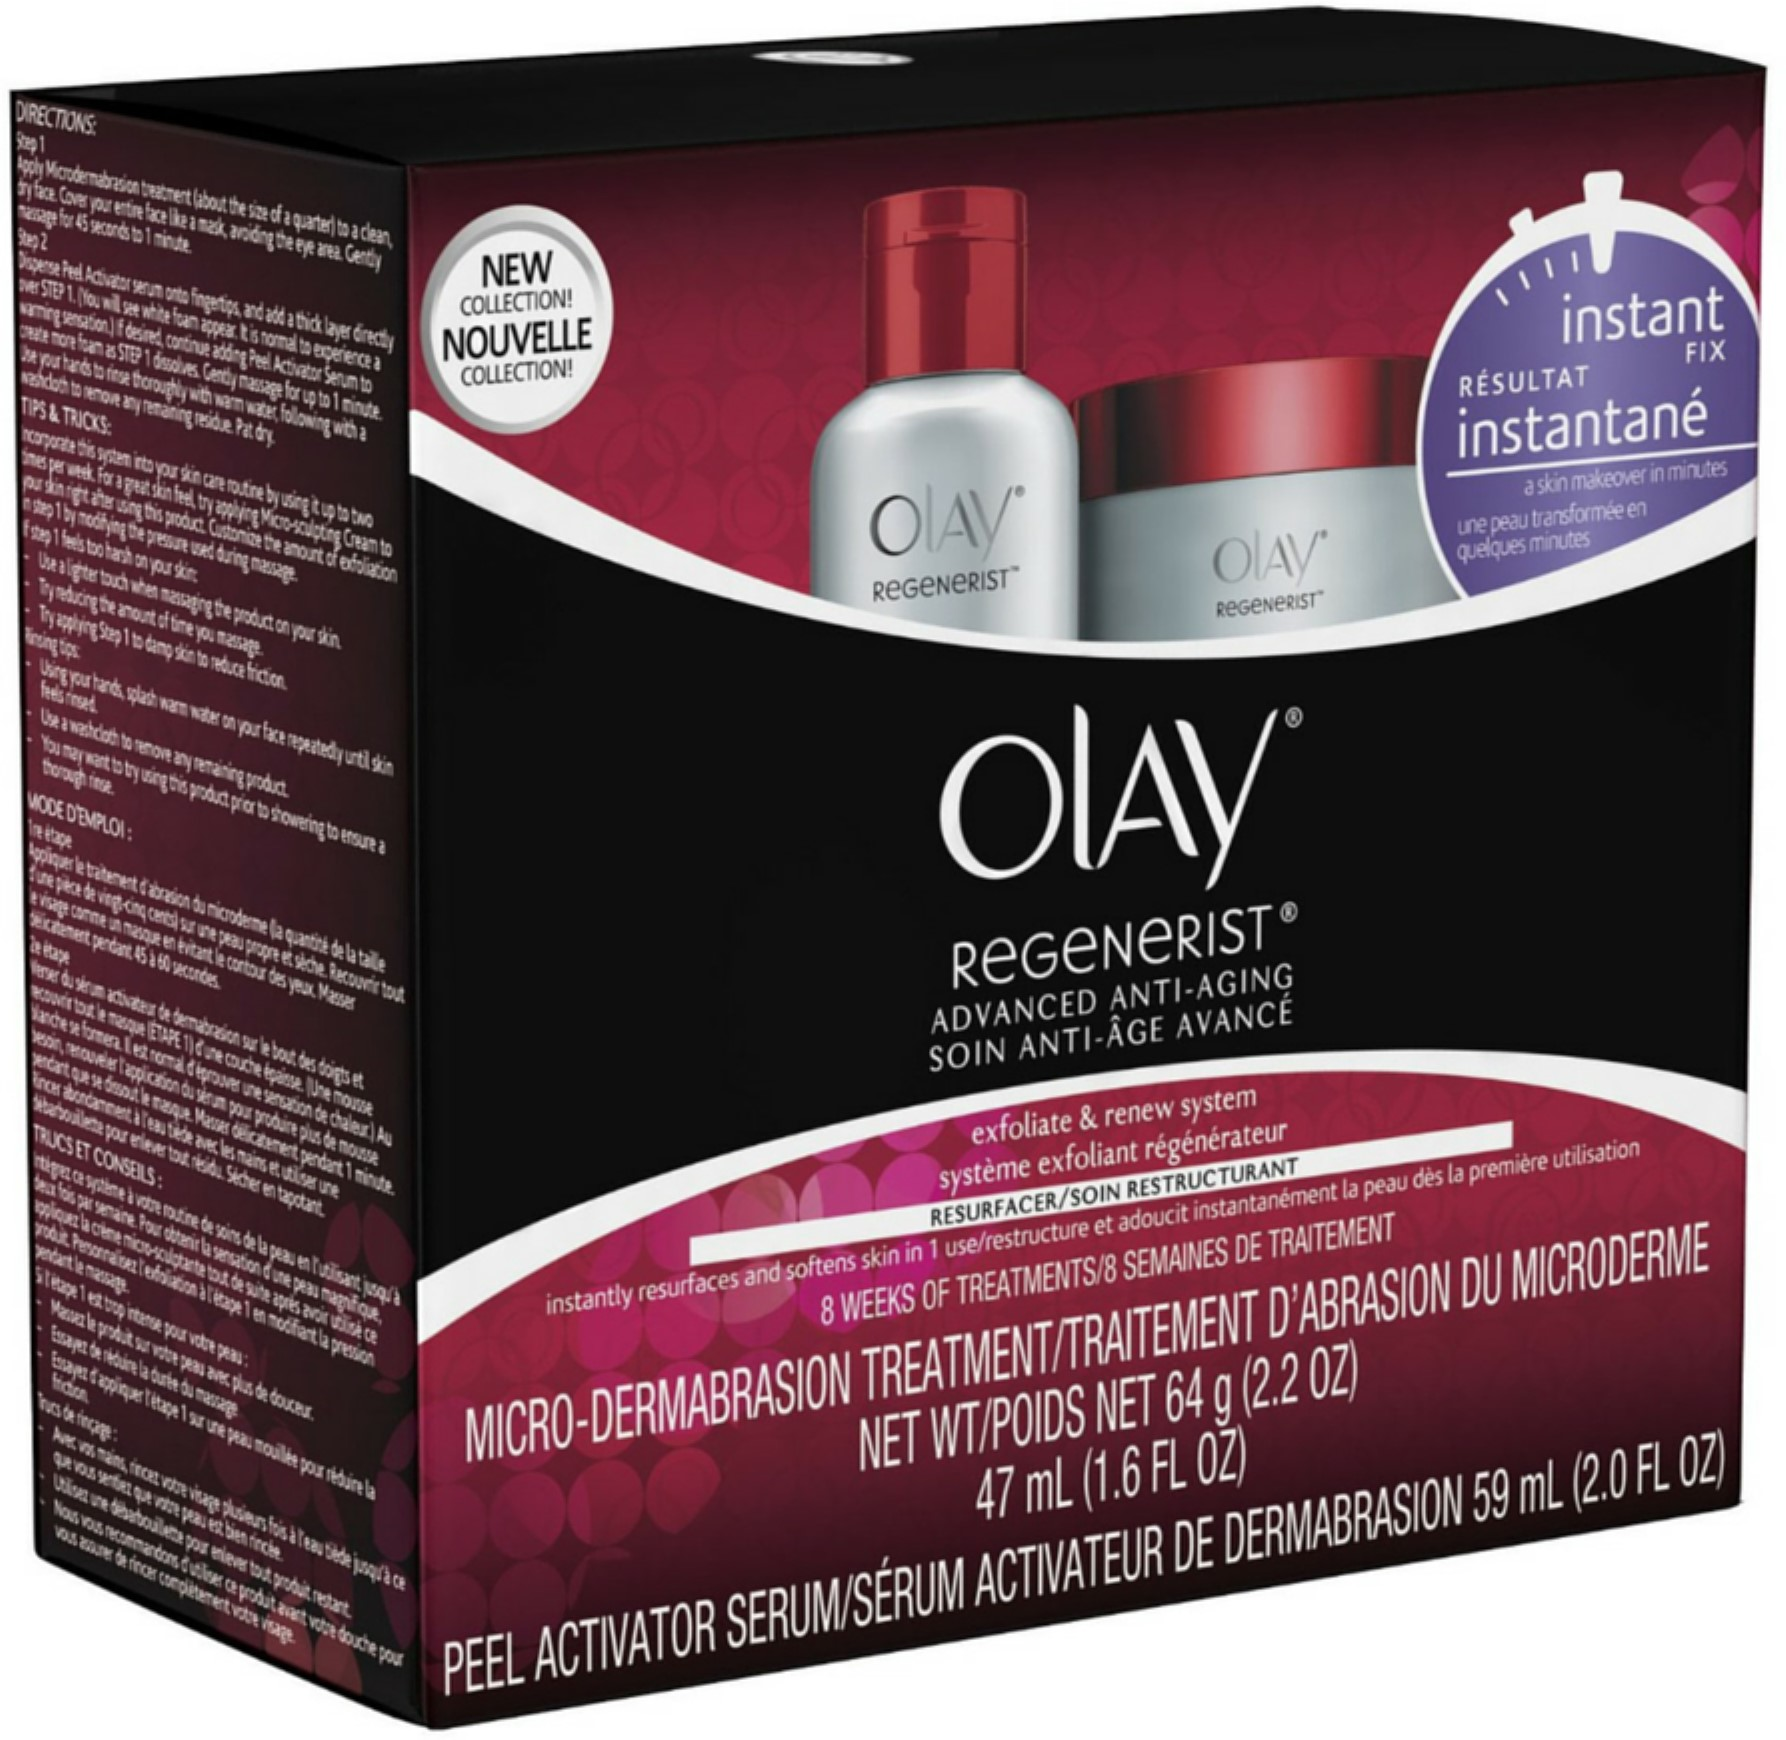 Olay Regenerist Microdermabrasion & Peel System Microdermabrasion Facial Treatment 1 Kit